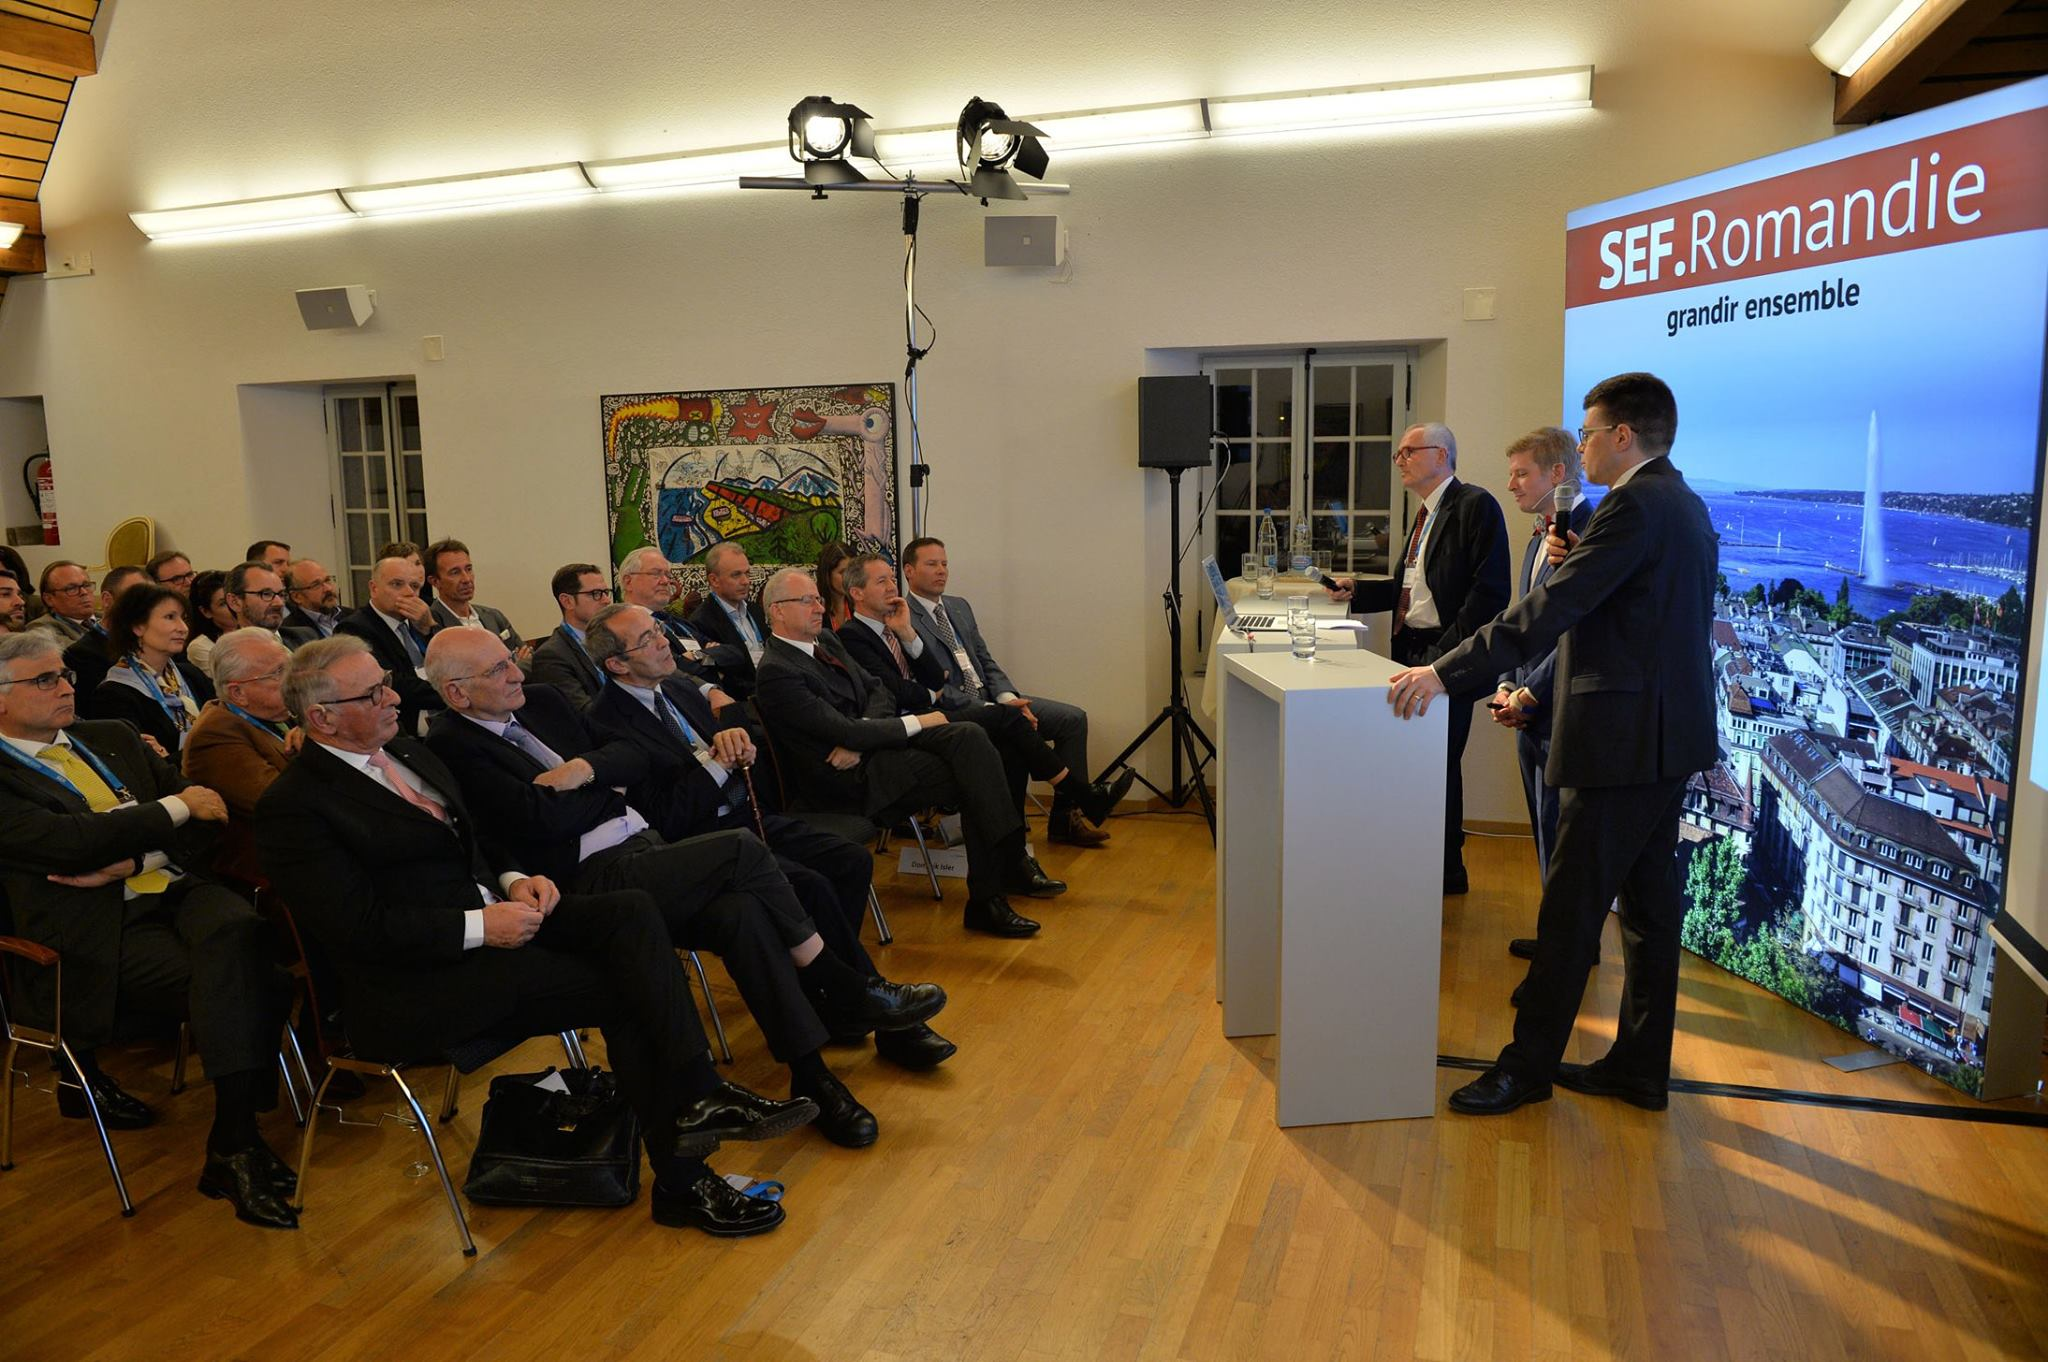 EU Business School Hosted the Swiss Economic Forum Kick-off Romandie Event in Yvorne